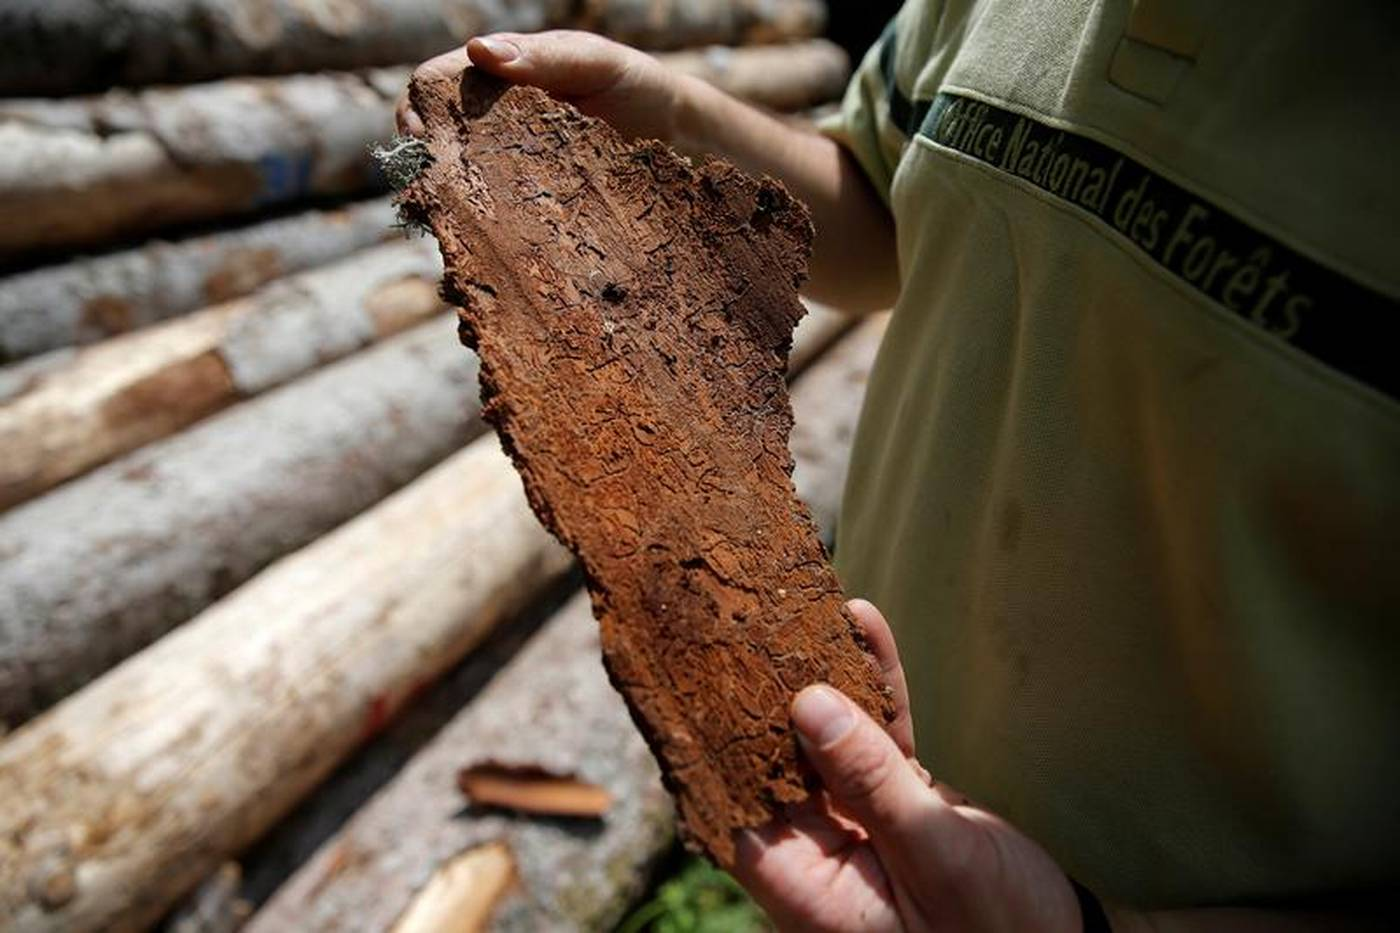 French forests scarred as heatwaves bring bark beetle ...